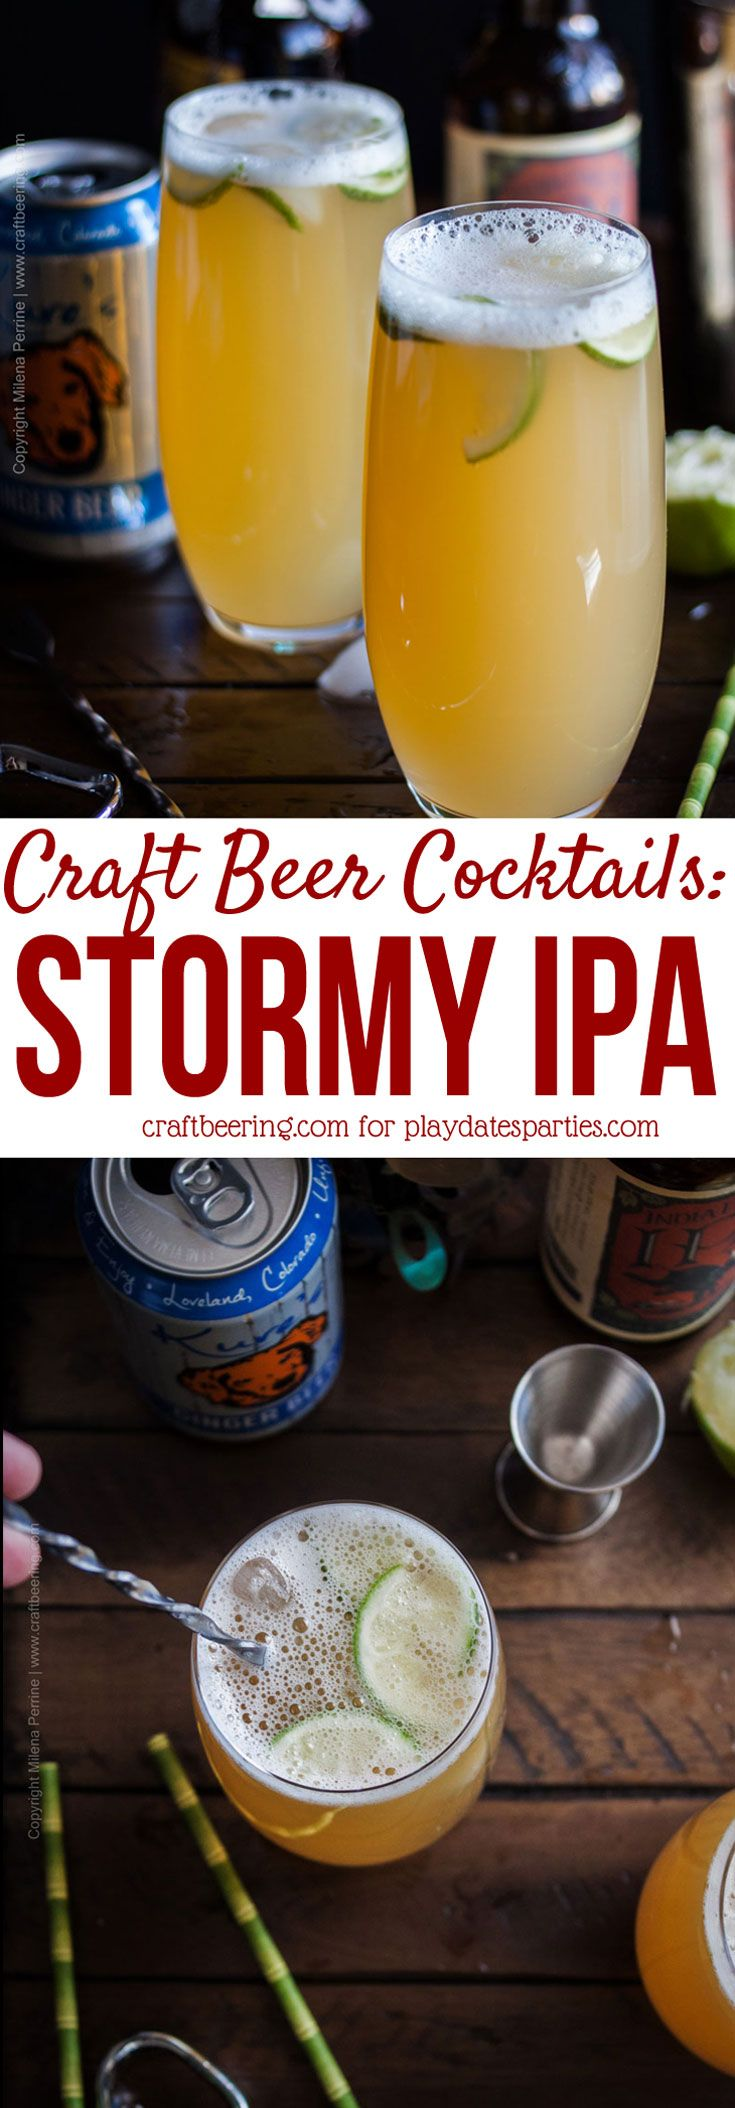 Meet the Stormy IPA cocktail. Inspired by a classic dark rum #cocktail and America's favorite beer style - the India Pale Ale, this craft beer cocktail #recipe can also be seen as a fortified version of a shandy.